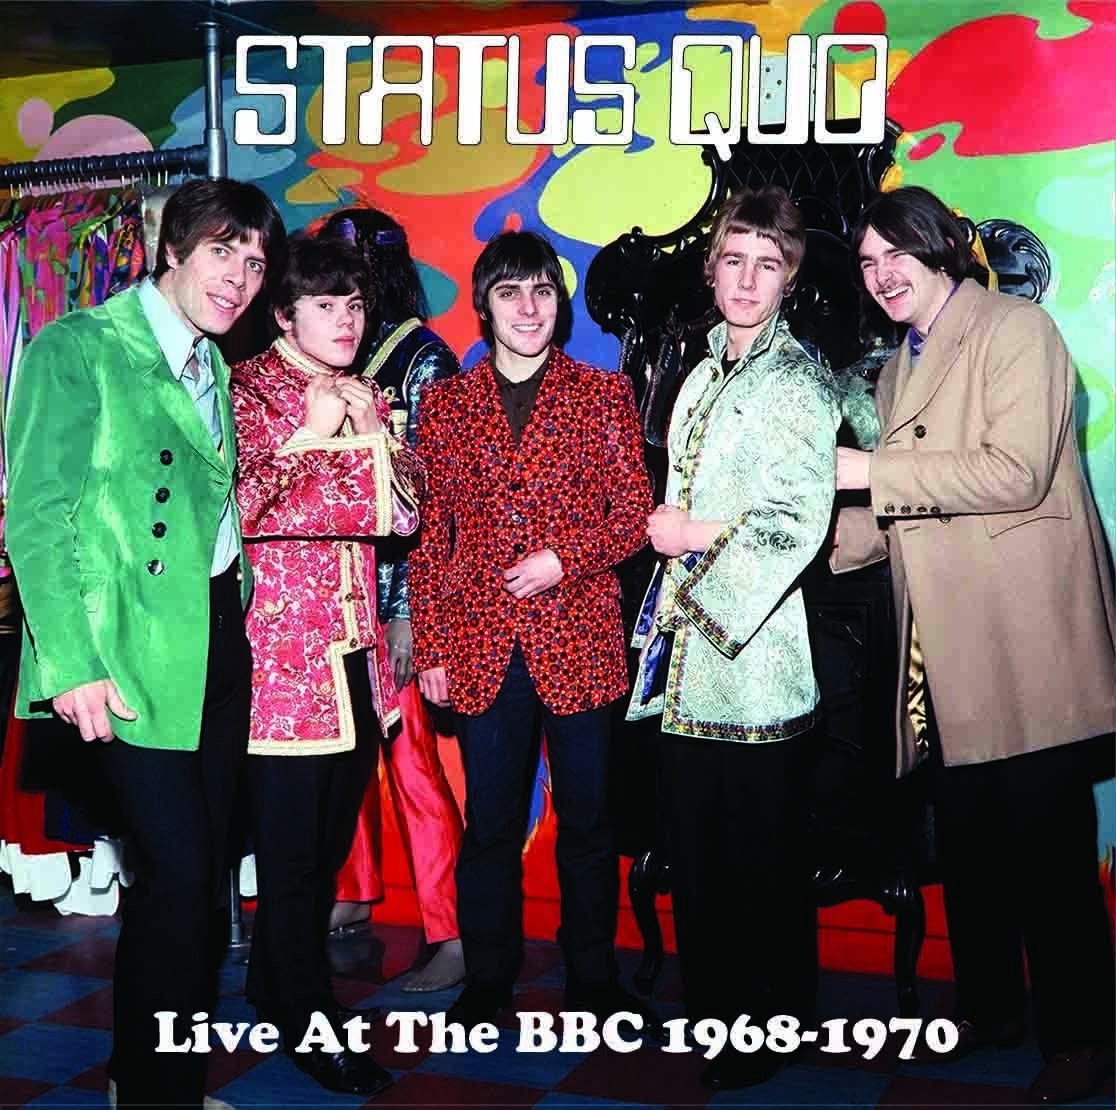 Live At The BBC 1968-70 ! (Vinyl)